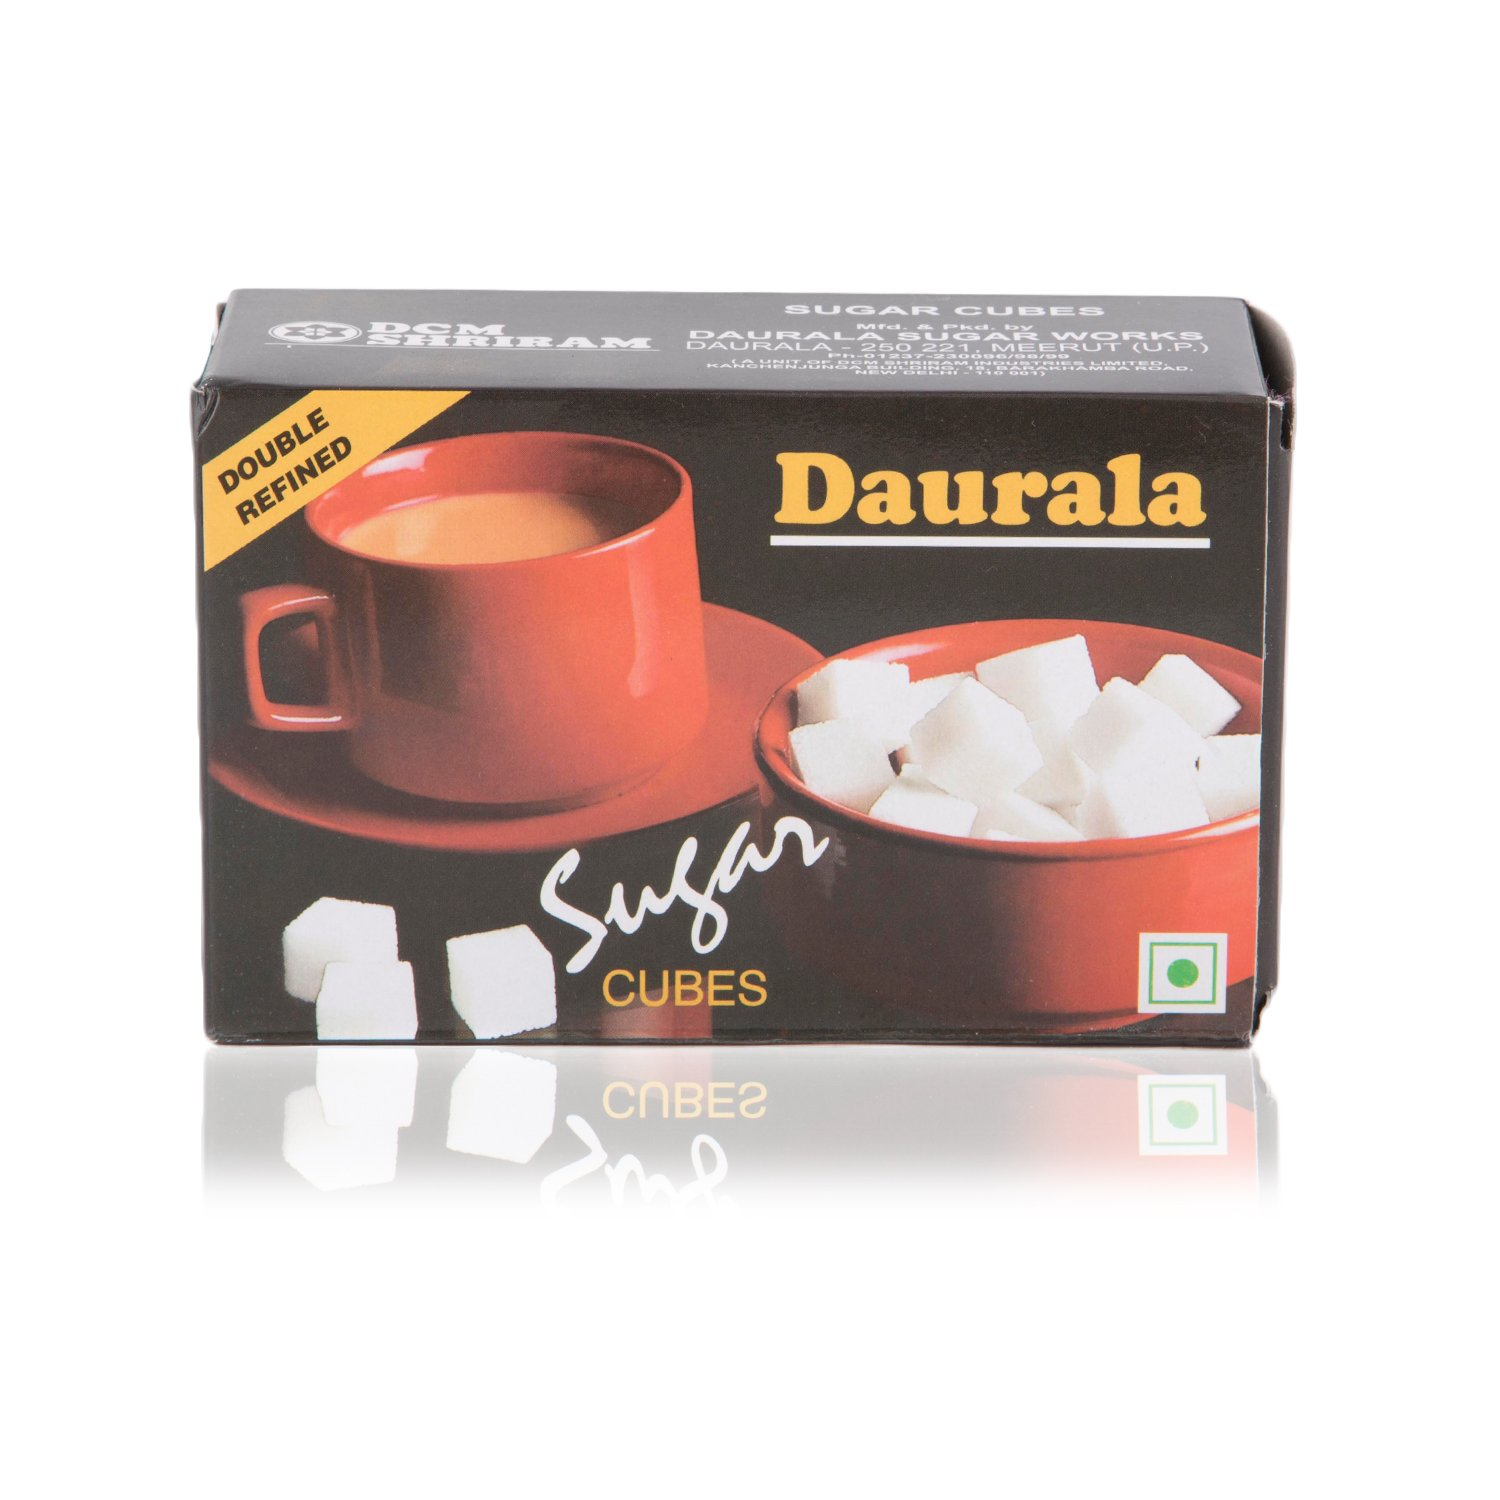 SUGAR CUBE DAURALA 500GM